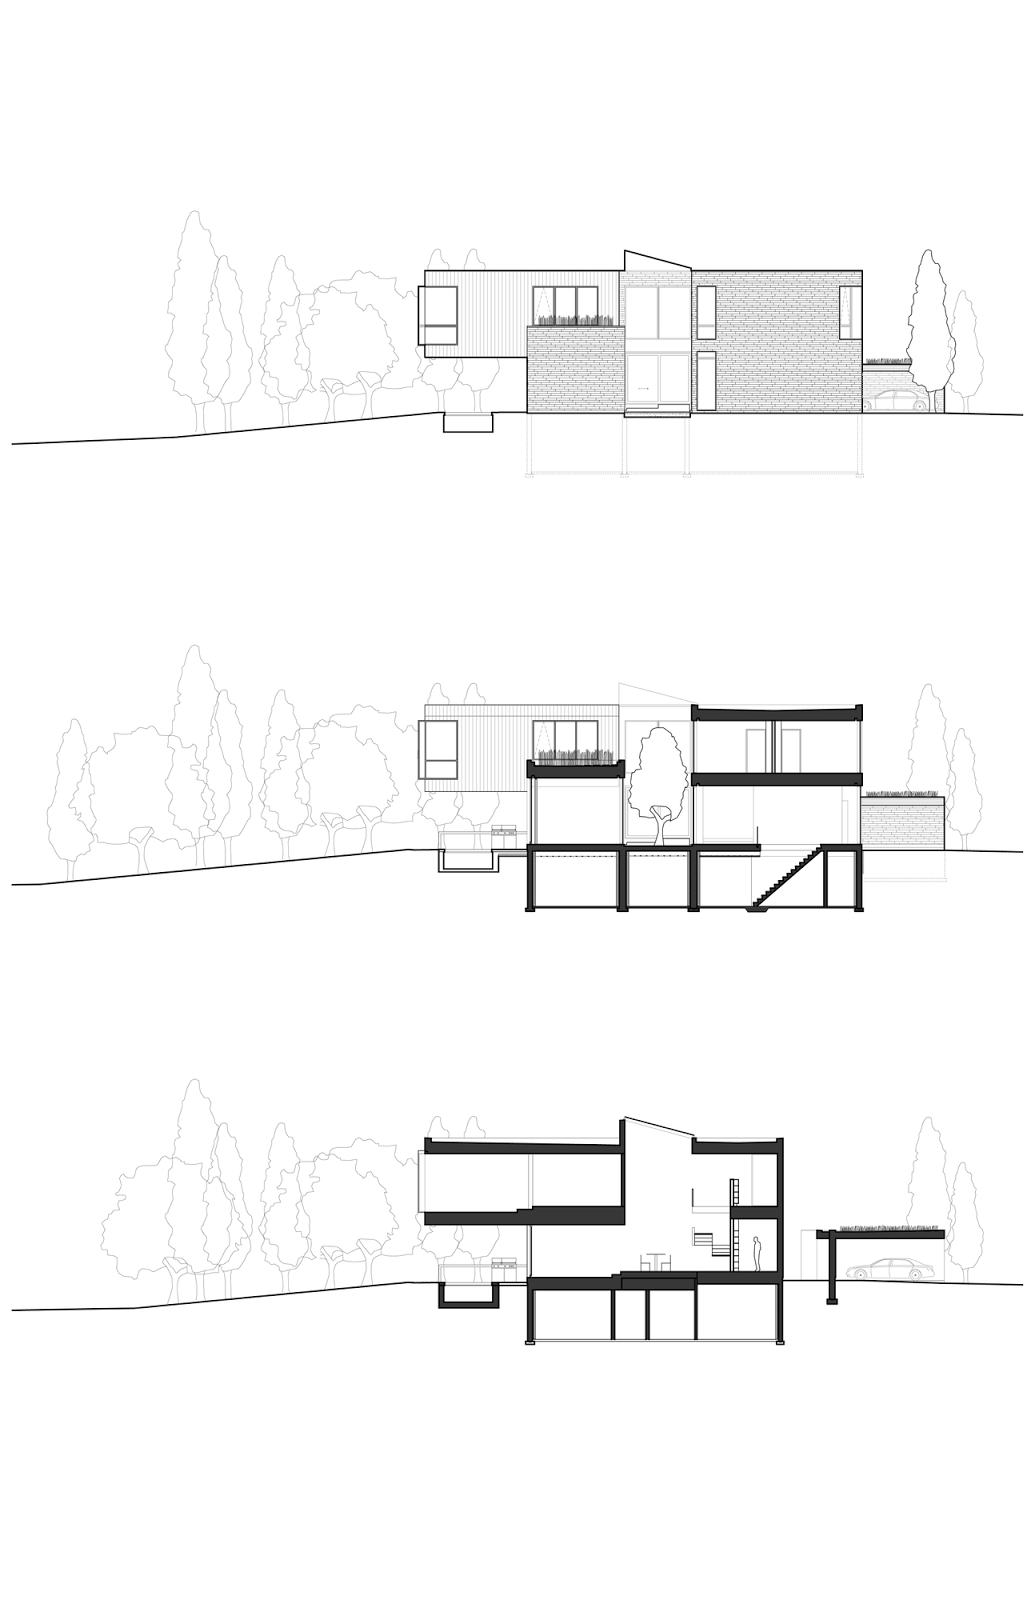 Cedarvale Ravine House Designed By Drew Mandel Architects: Looking For Ideas For Your Home: บ้านโมเดริน์ 2 ชั้นการ